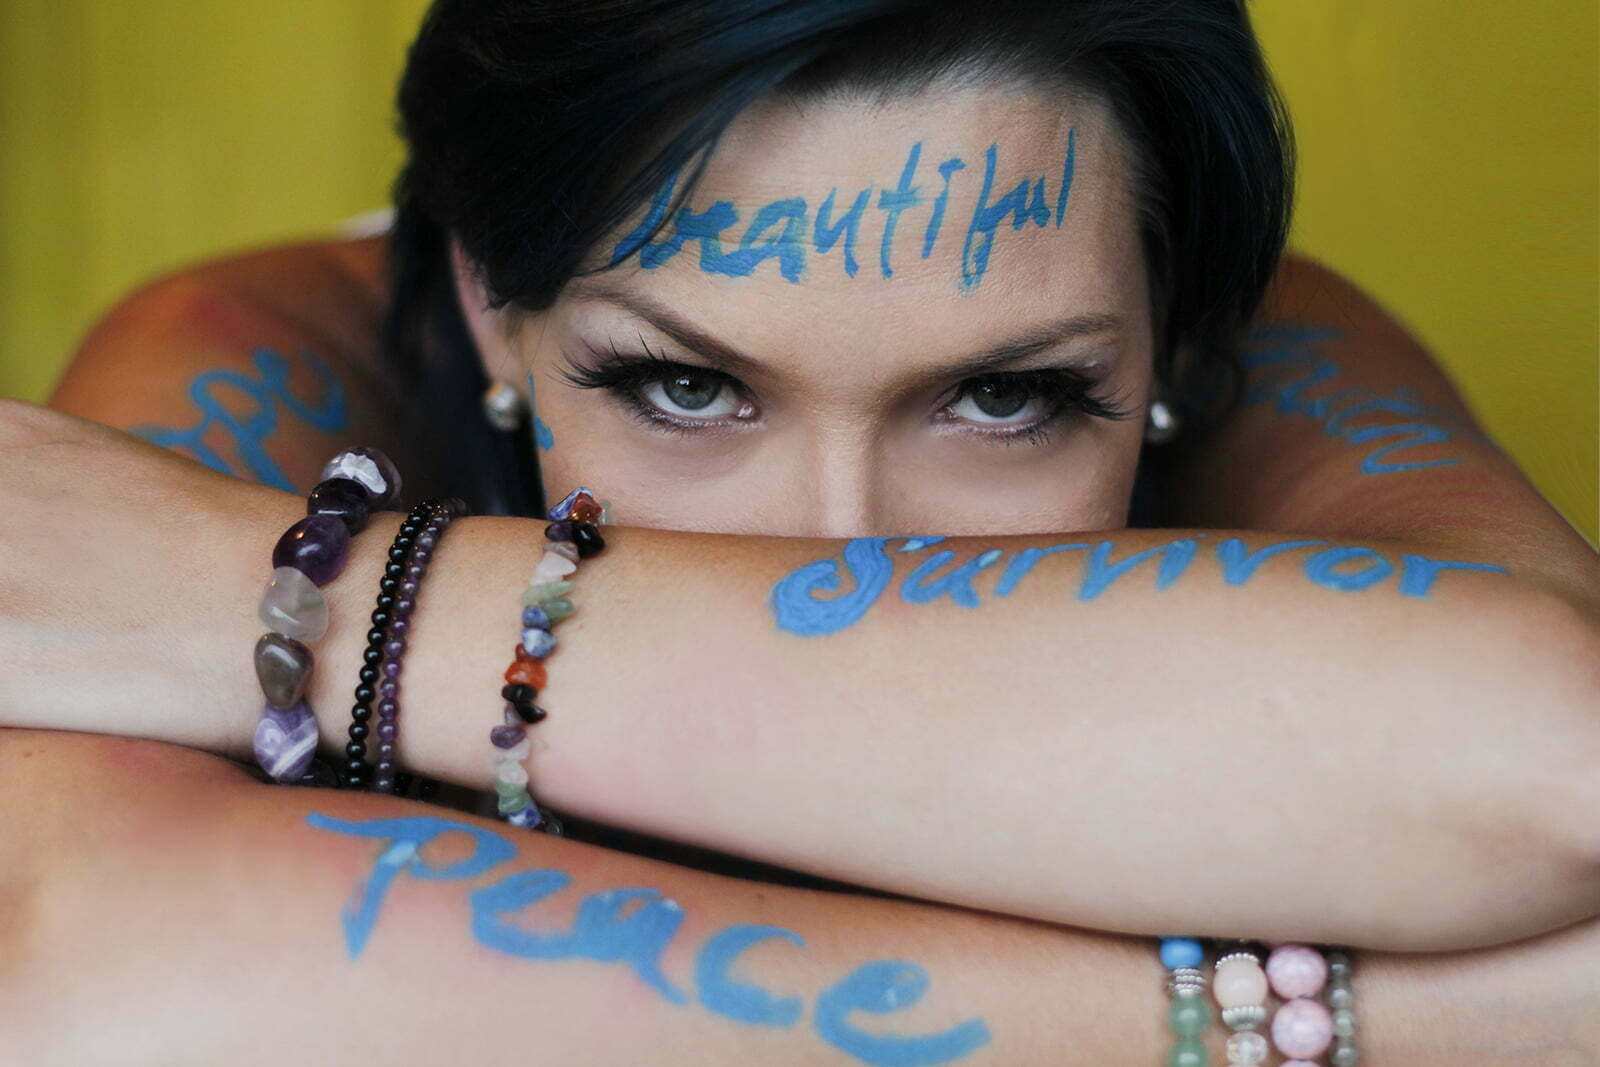 Peaceful Anna looks forward. Blue words 'beautiful,' 'peace,' and 'survivor' are painted on arms and face.